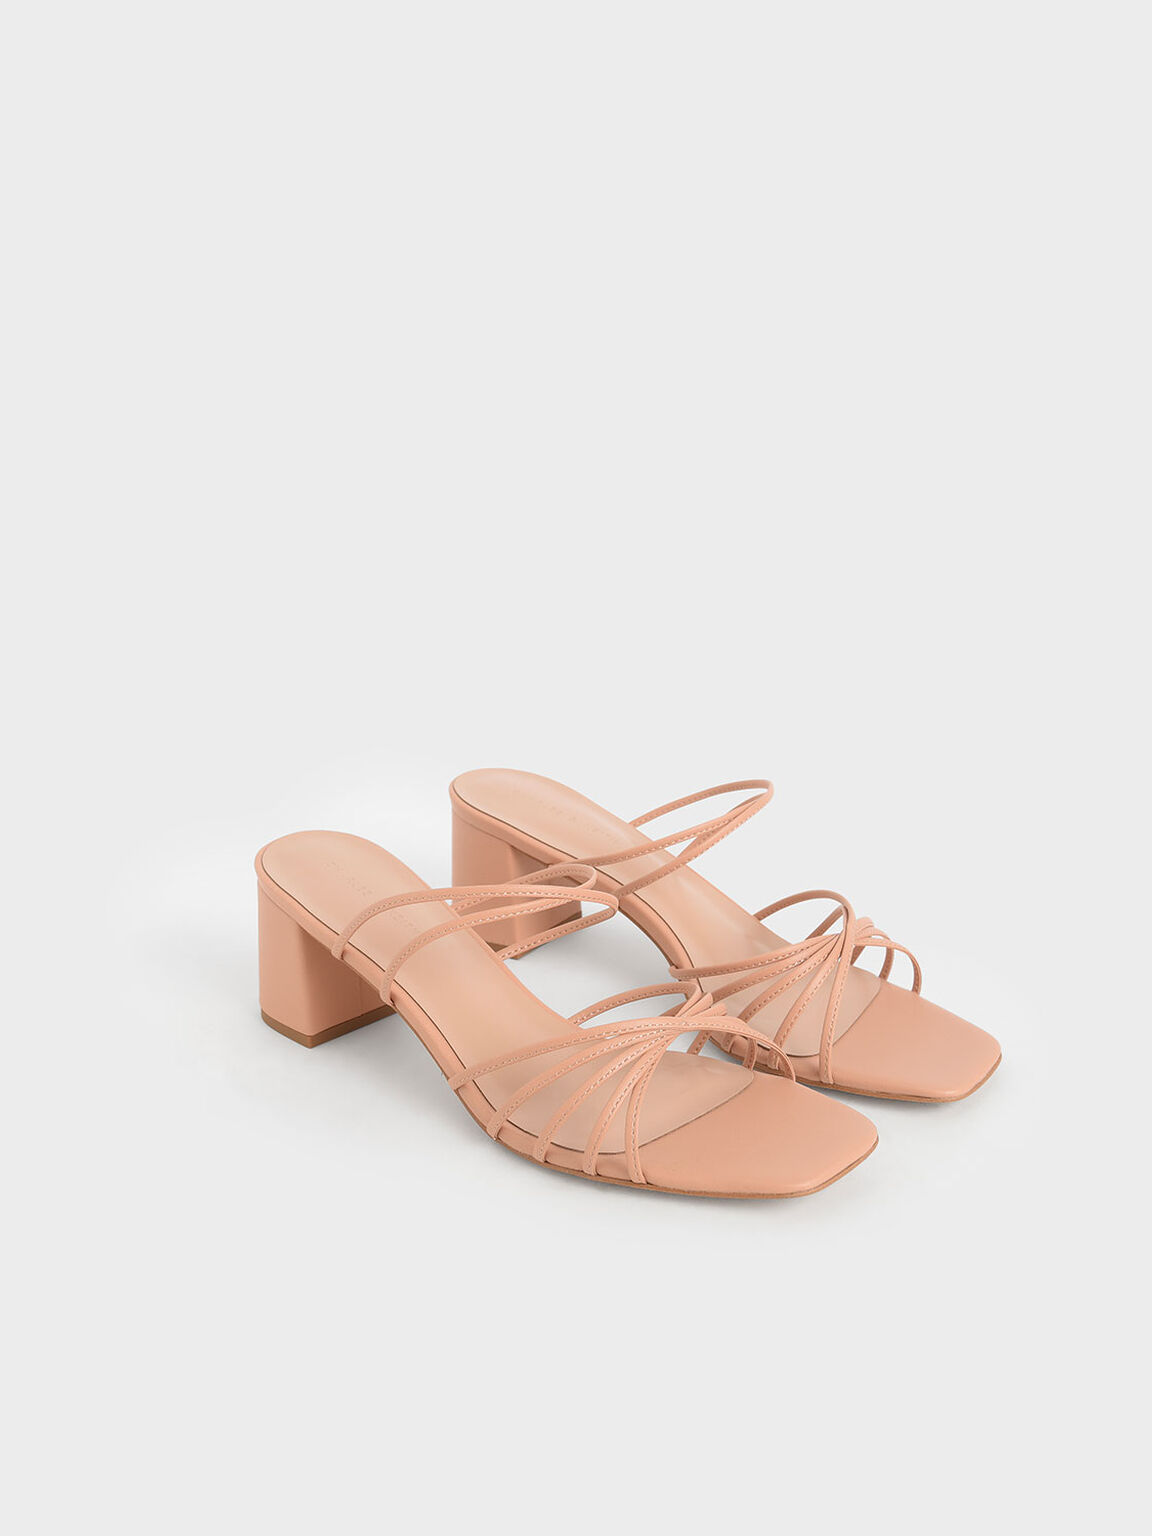 Strappy Square Toe Sandals, Nude, hi-res